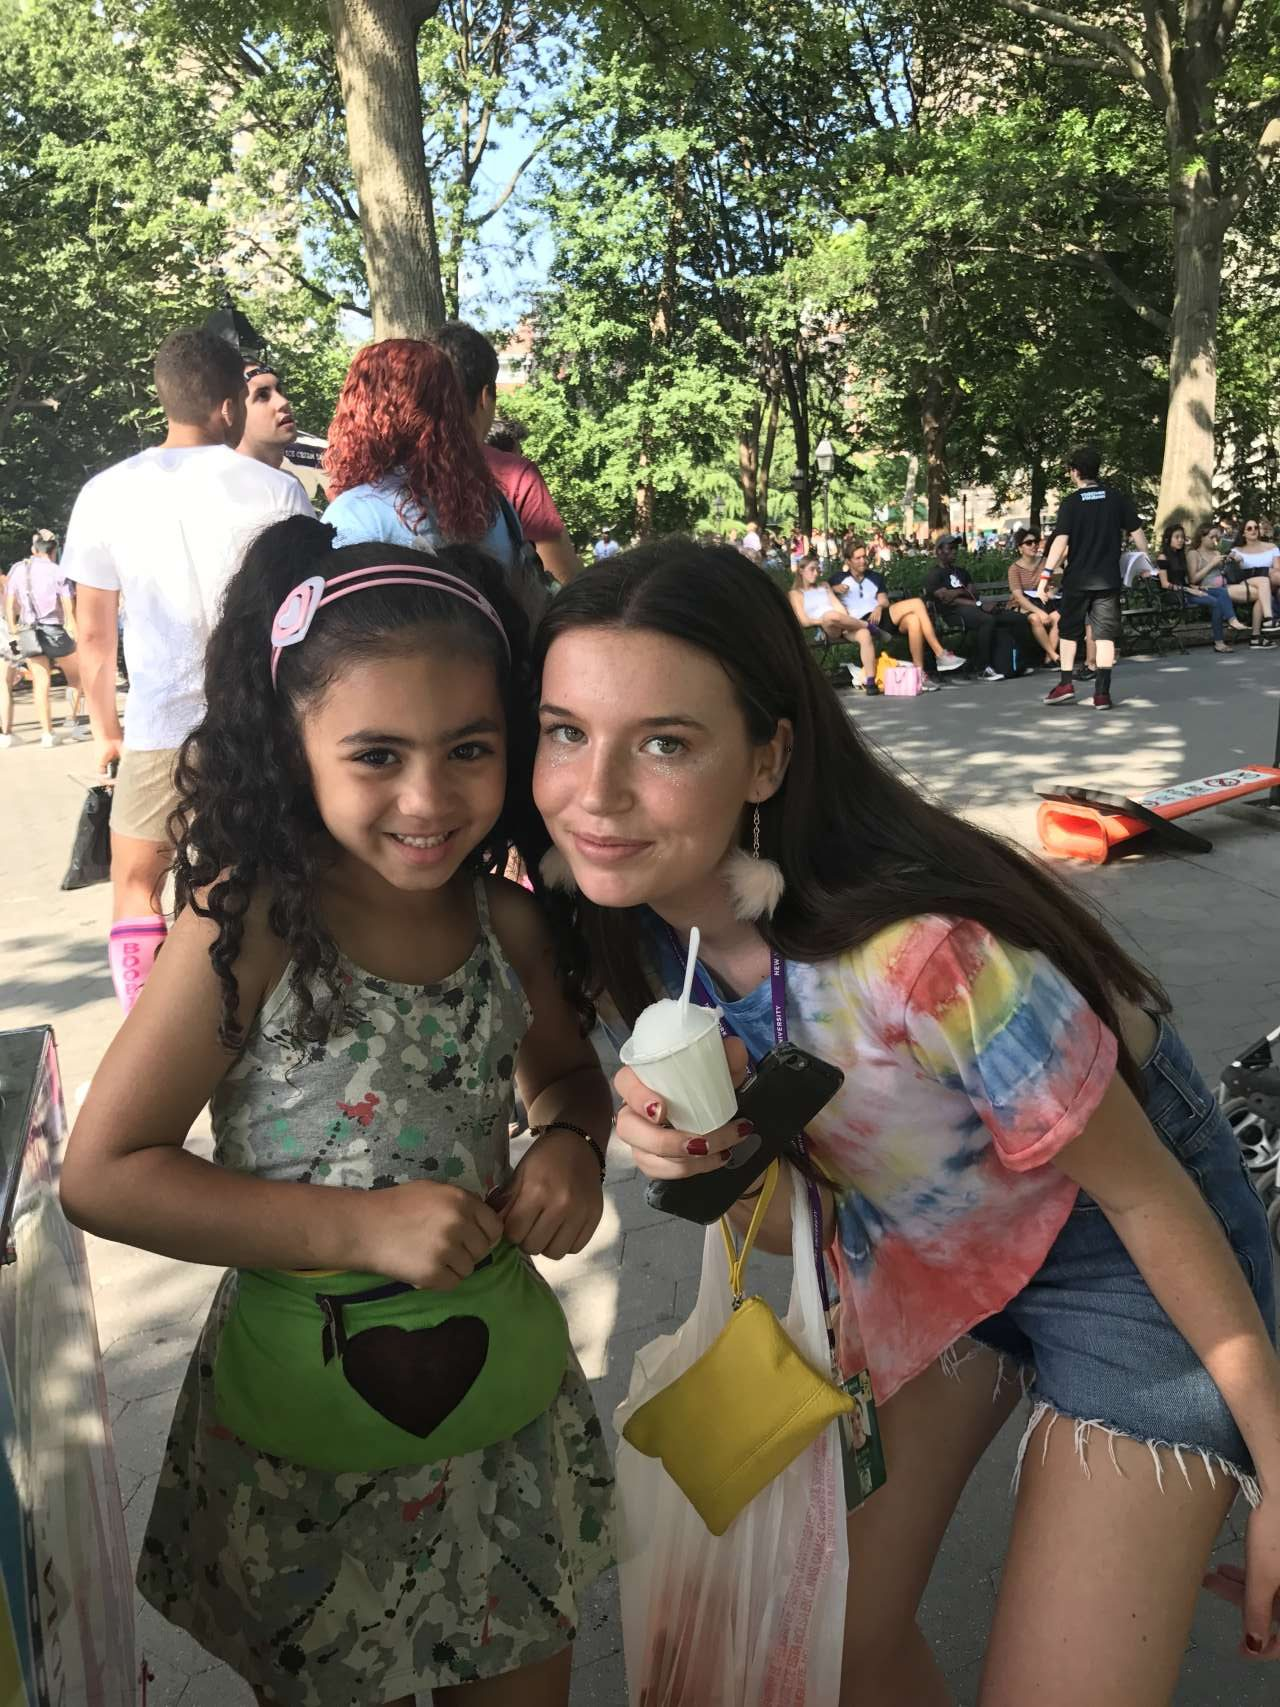 2 girls posing for a photo with lemon italian ice and India Jolie in park